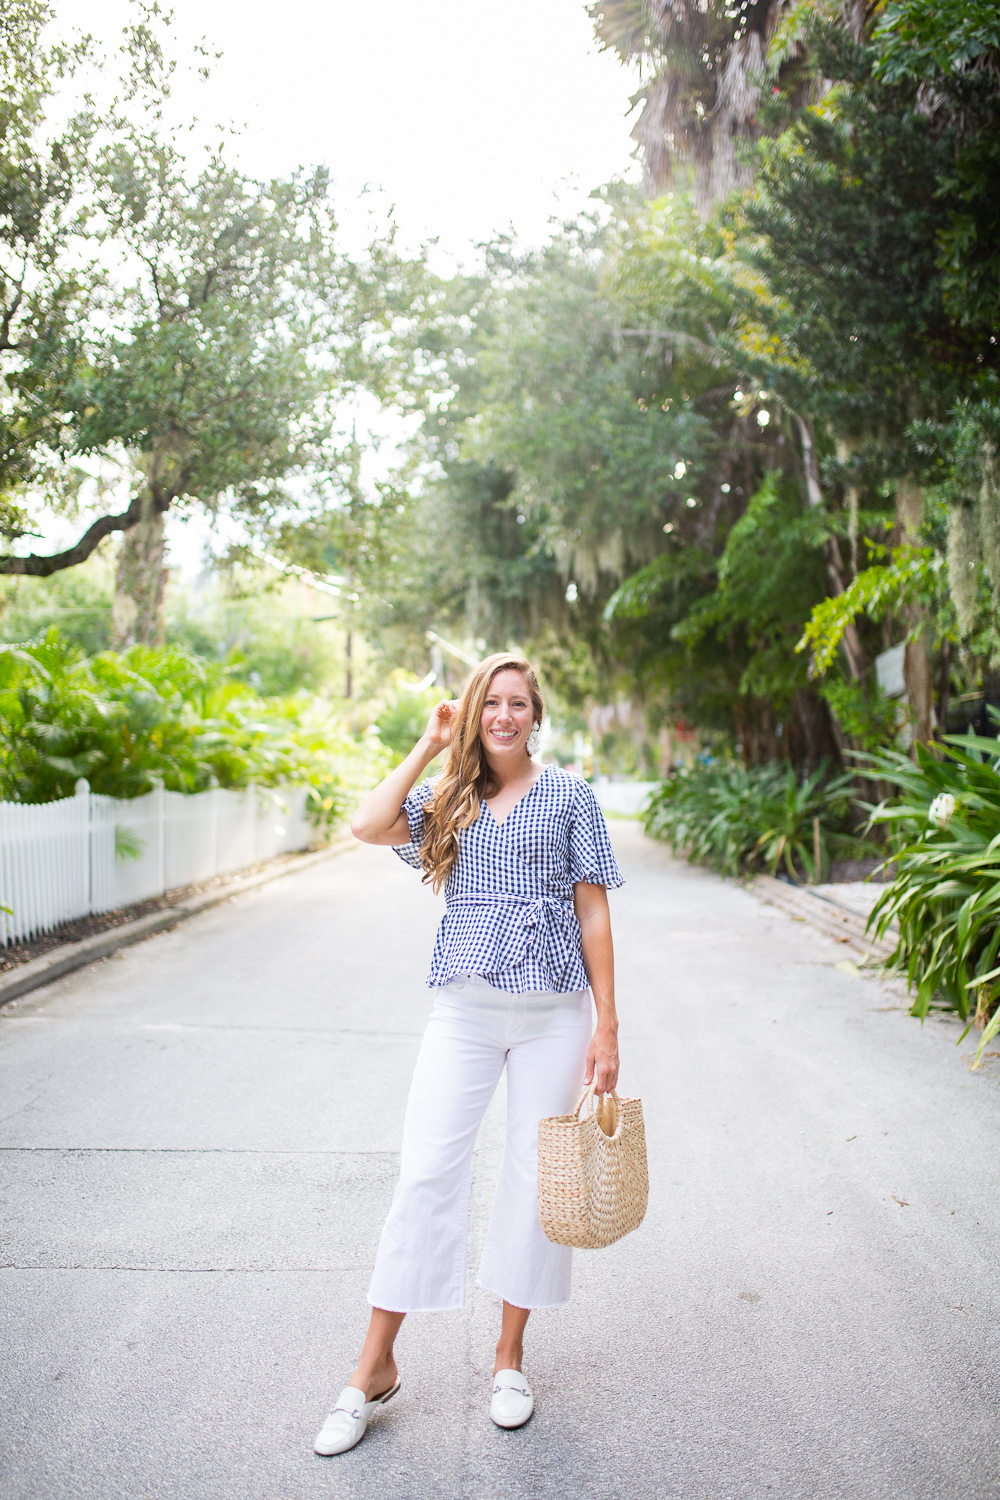 Classic Blue and White End of Summer Outfit / How to Style Wide Leg Pants / How to Style a Wrap Top / Summer Outfit Inspiration / Coastal Outfit Inspiration / Gingham Wrap Top / White Casual Wide Leg Pants / Backless Mules / Straw Bag - Sunshine Style